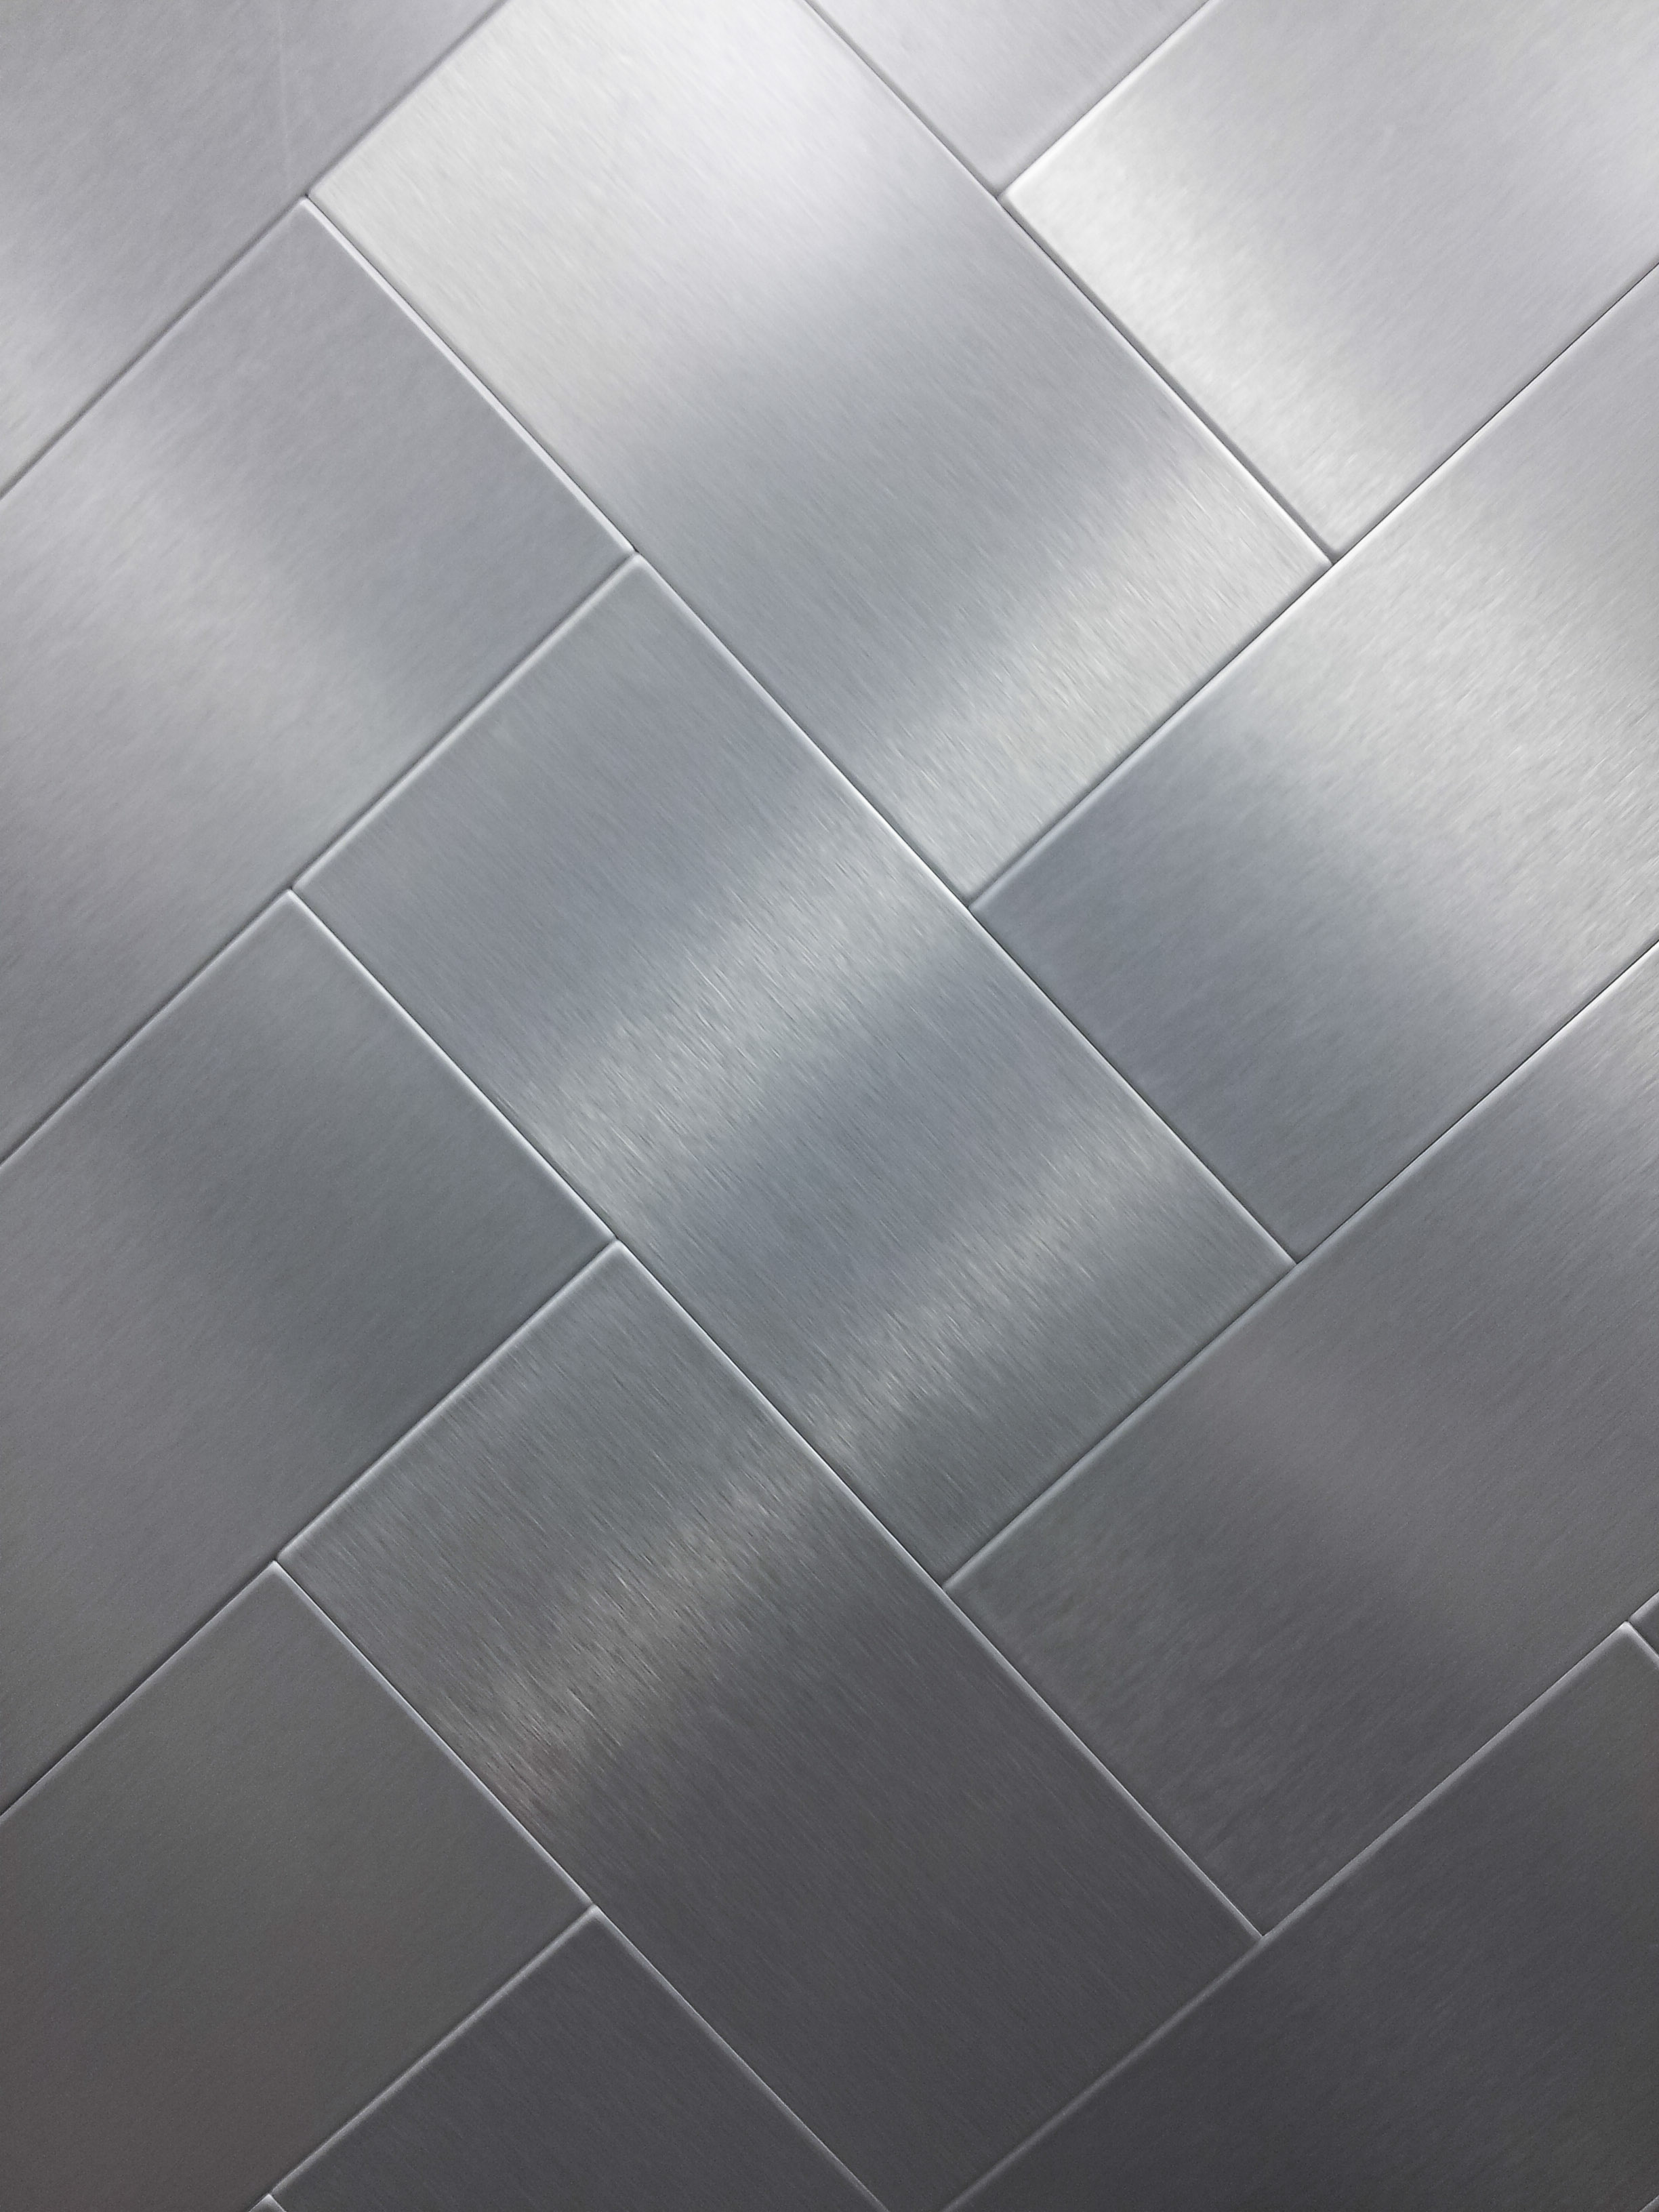 ... brushed silver metal texture tile surface clean aluminum surface stock photo ...